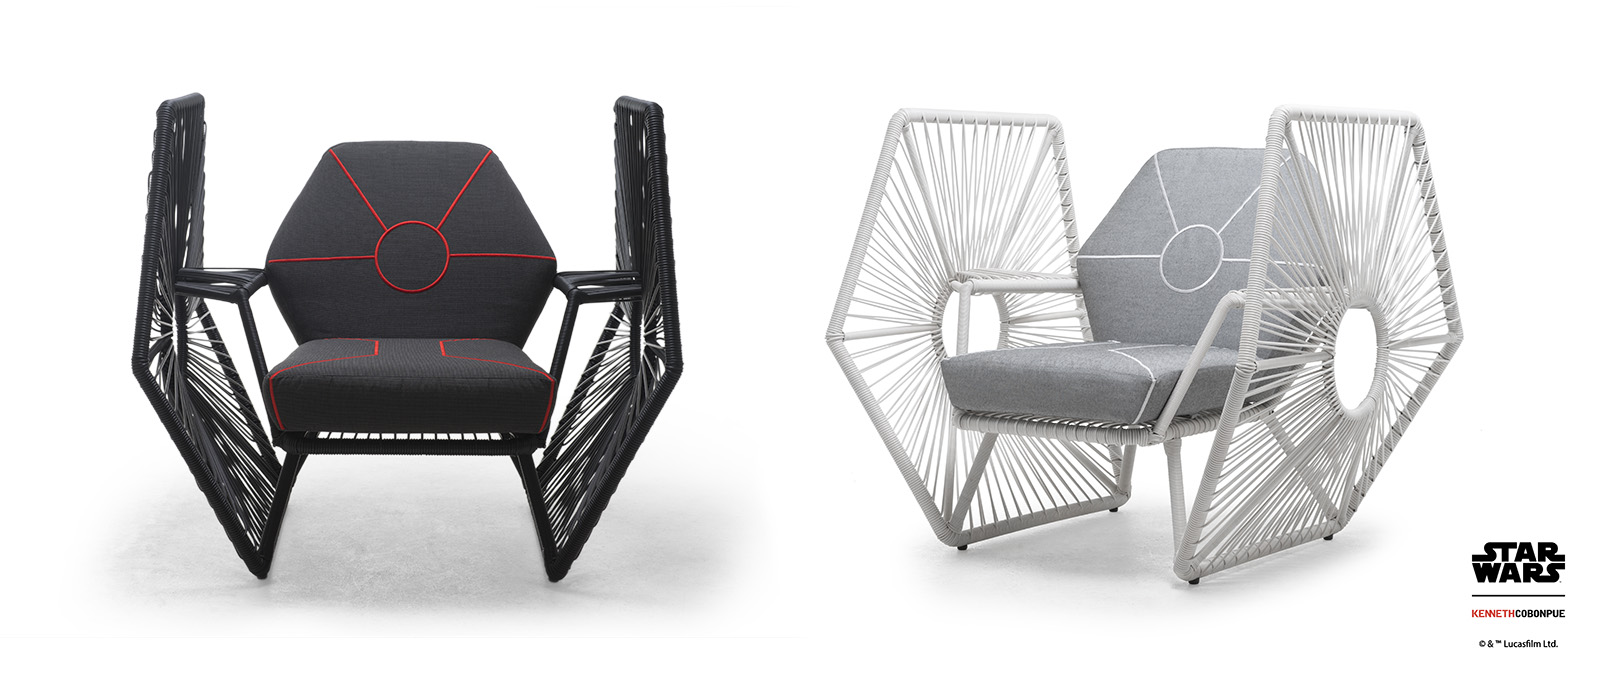 check-out-this-fun-collection-of-star-wars-themed-furniture2